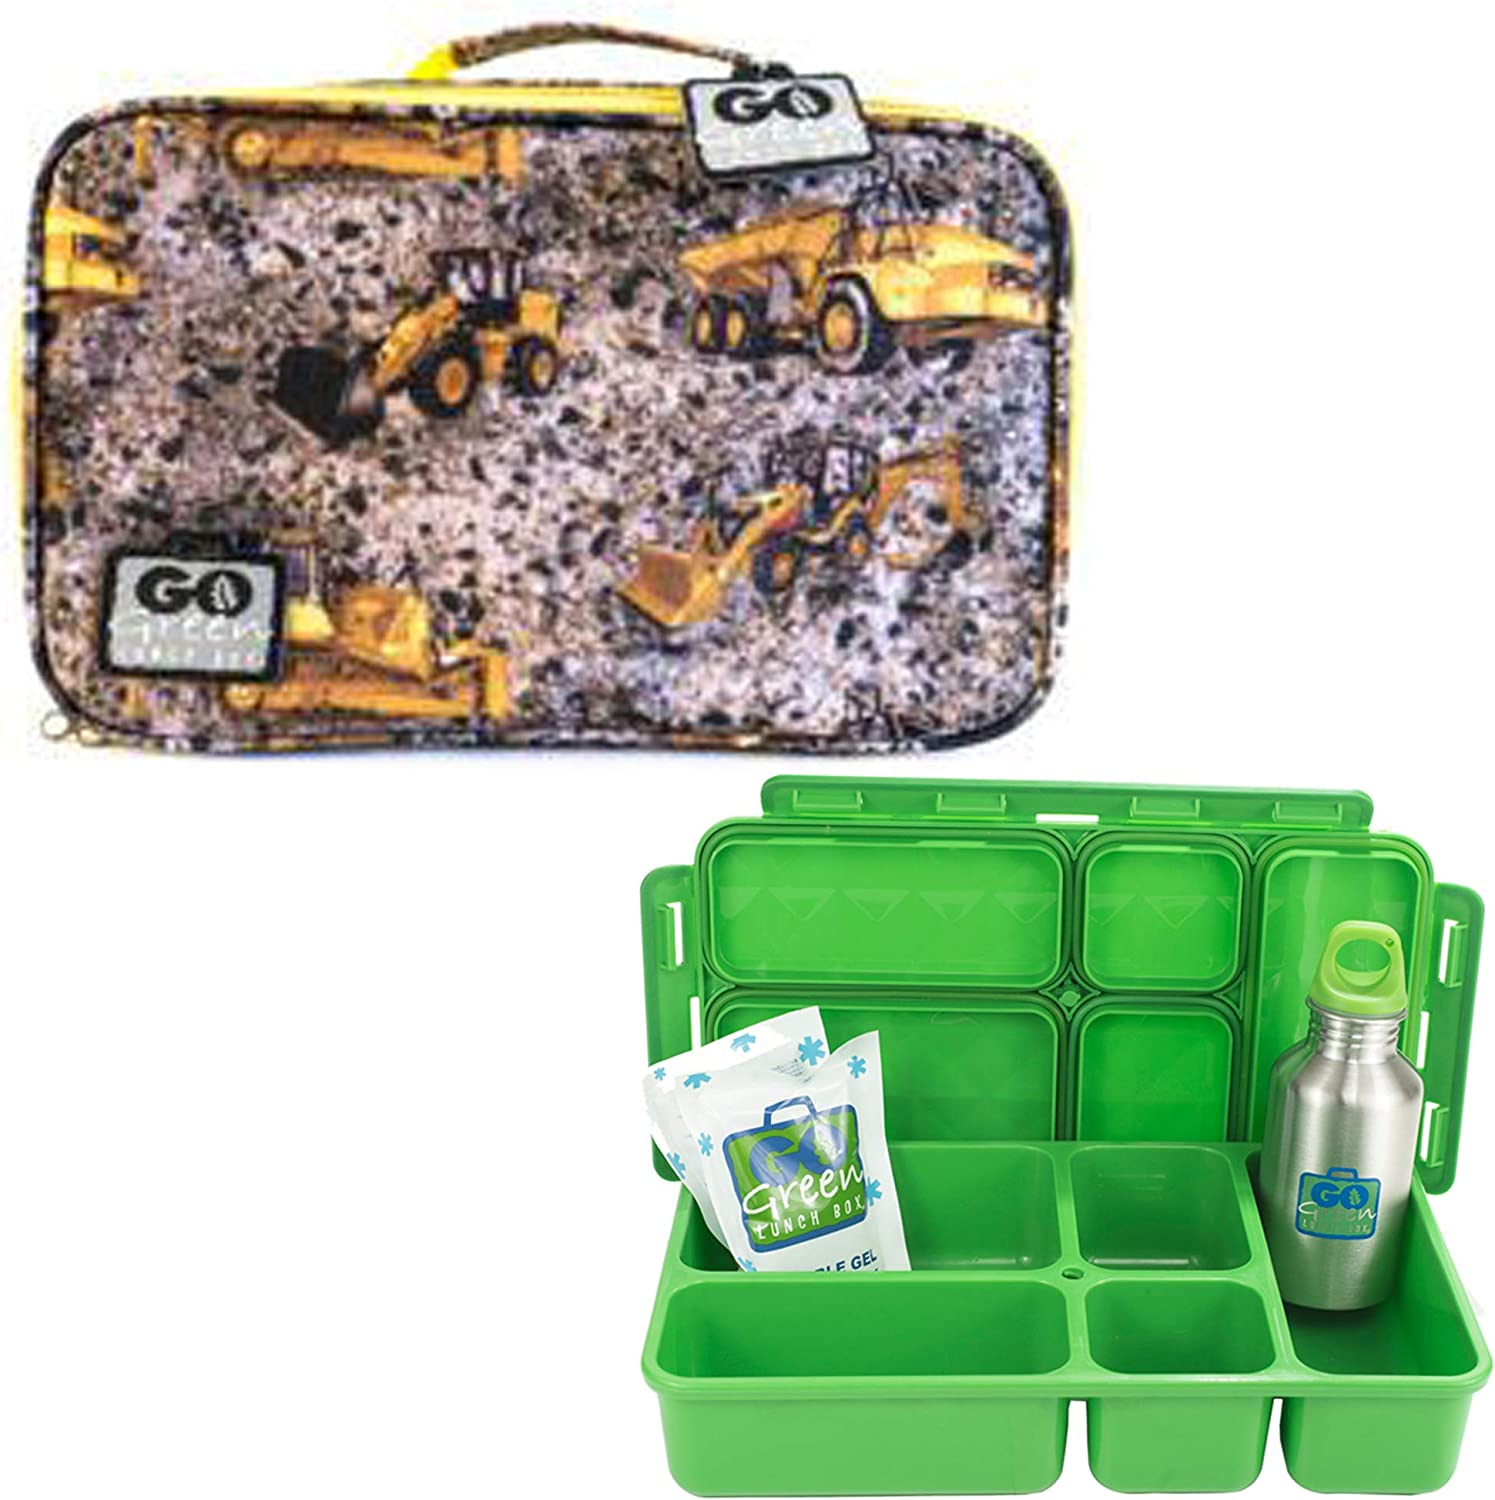 Go Green Lunch Box Set • 5 Compartment Leak-Proof Lunch Box • Insulated Carrying Bag • Beverage Bottle • Gel Freezer Pack (Boys - Under Construction)